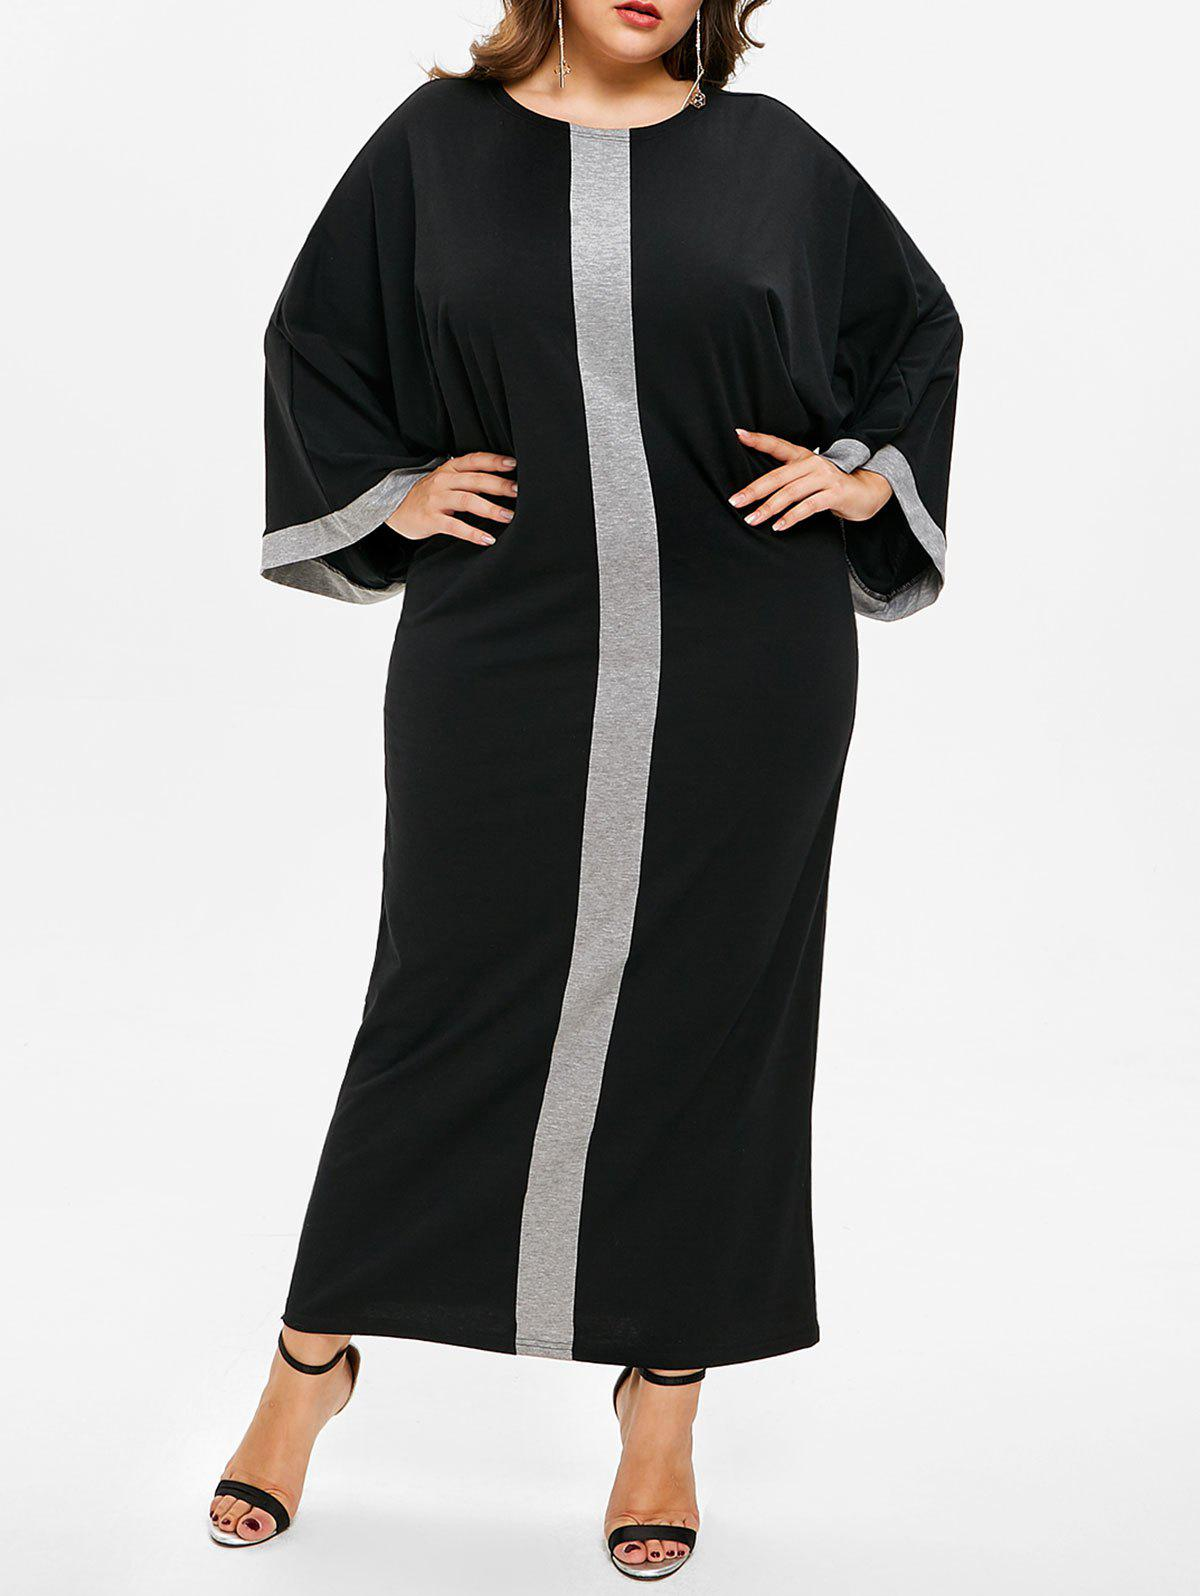 Hot Plus Size Batwing Sleeve Two Tone Dress